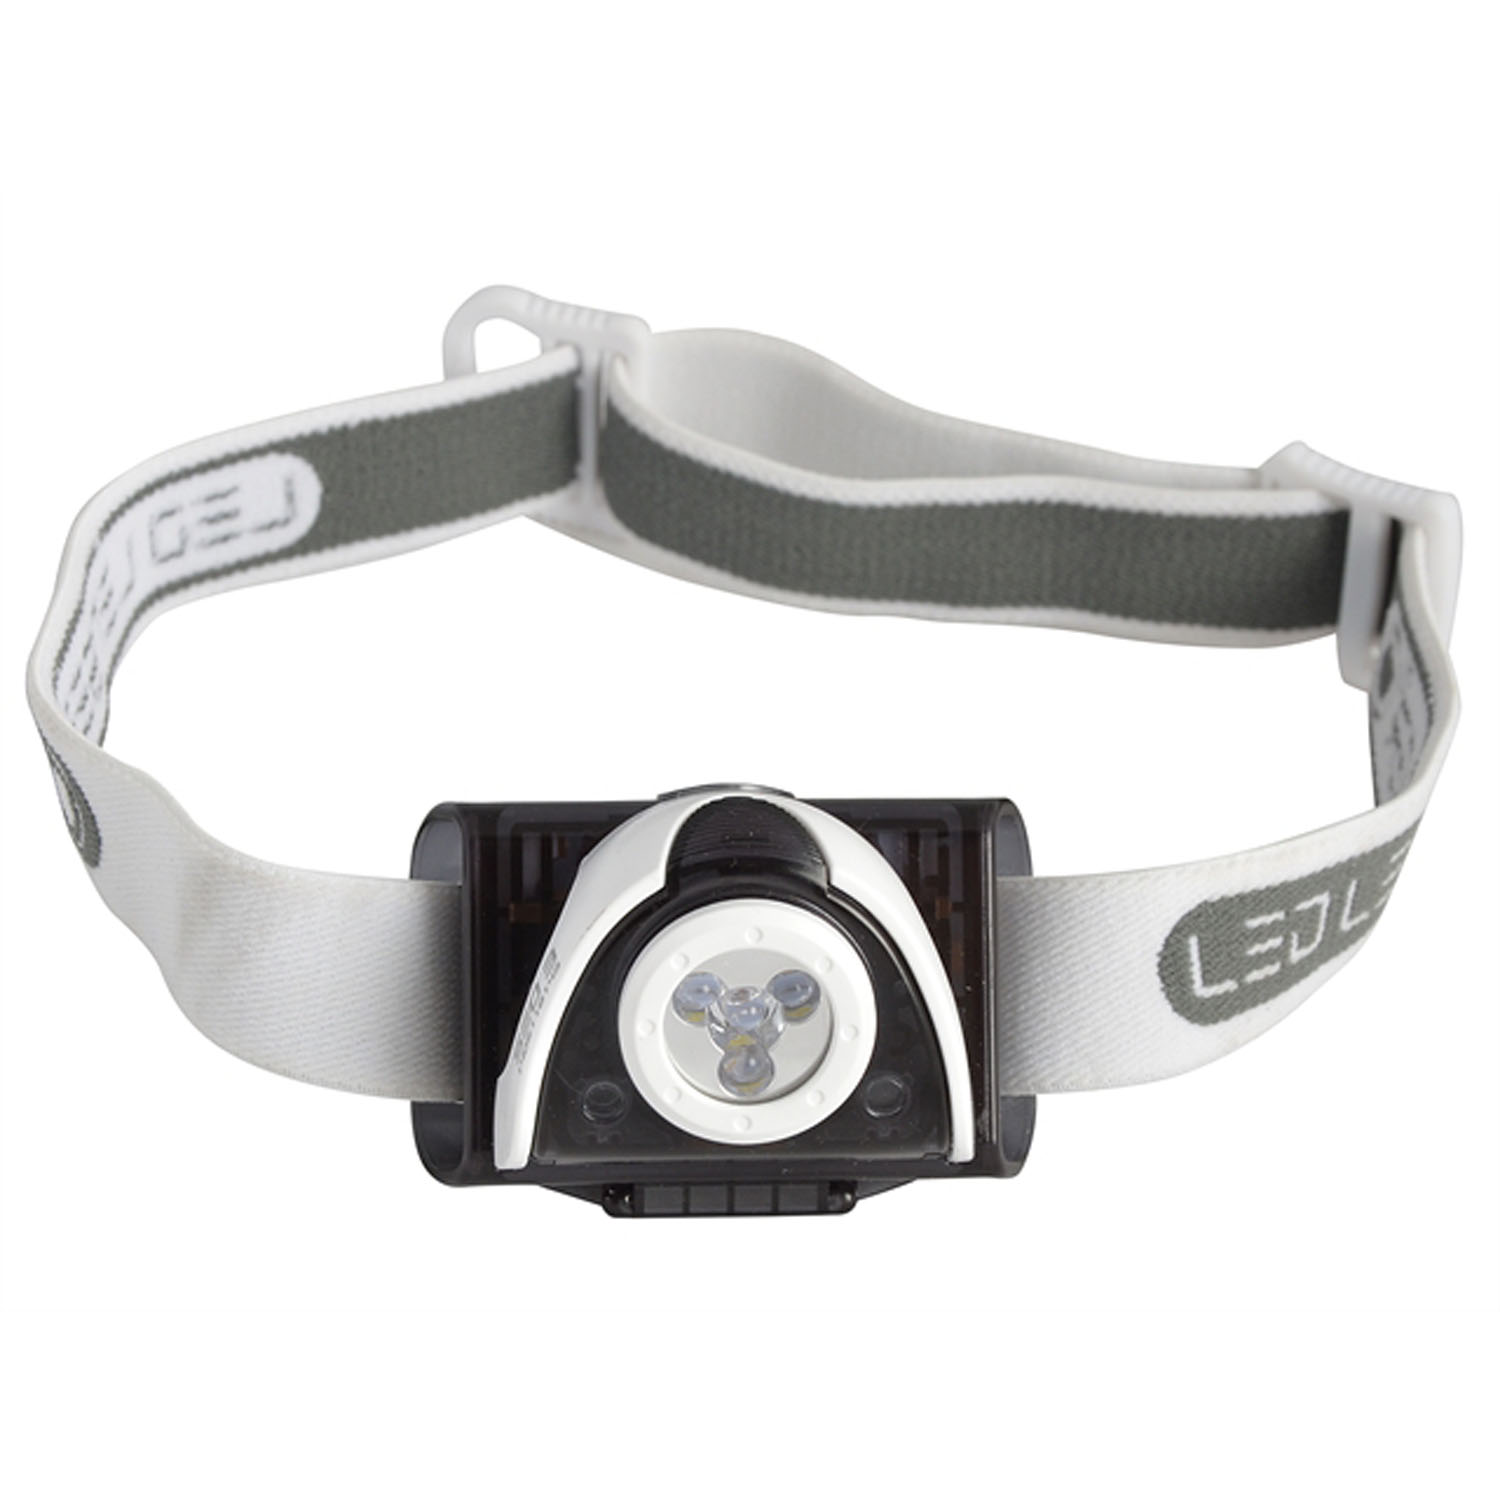 Led Lenser Seo Special Edition Headlight Torch